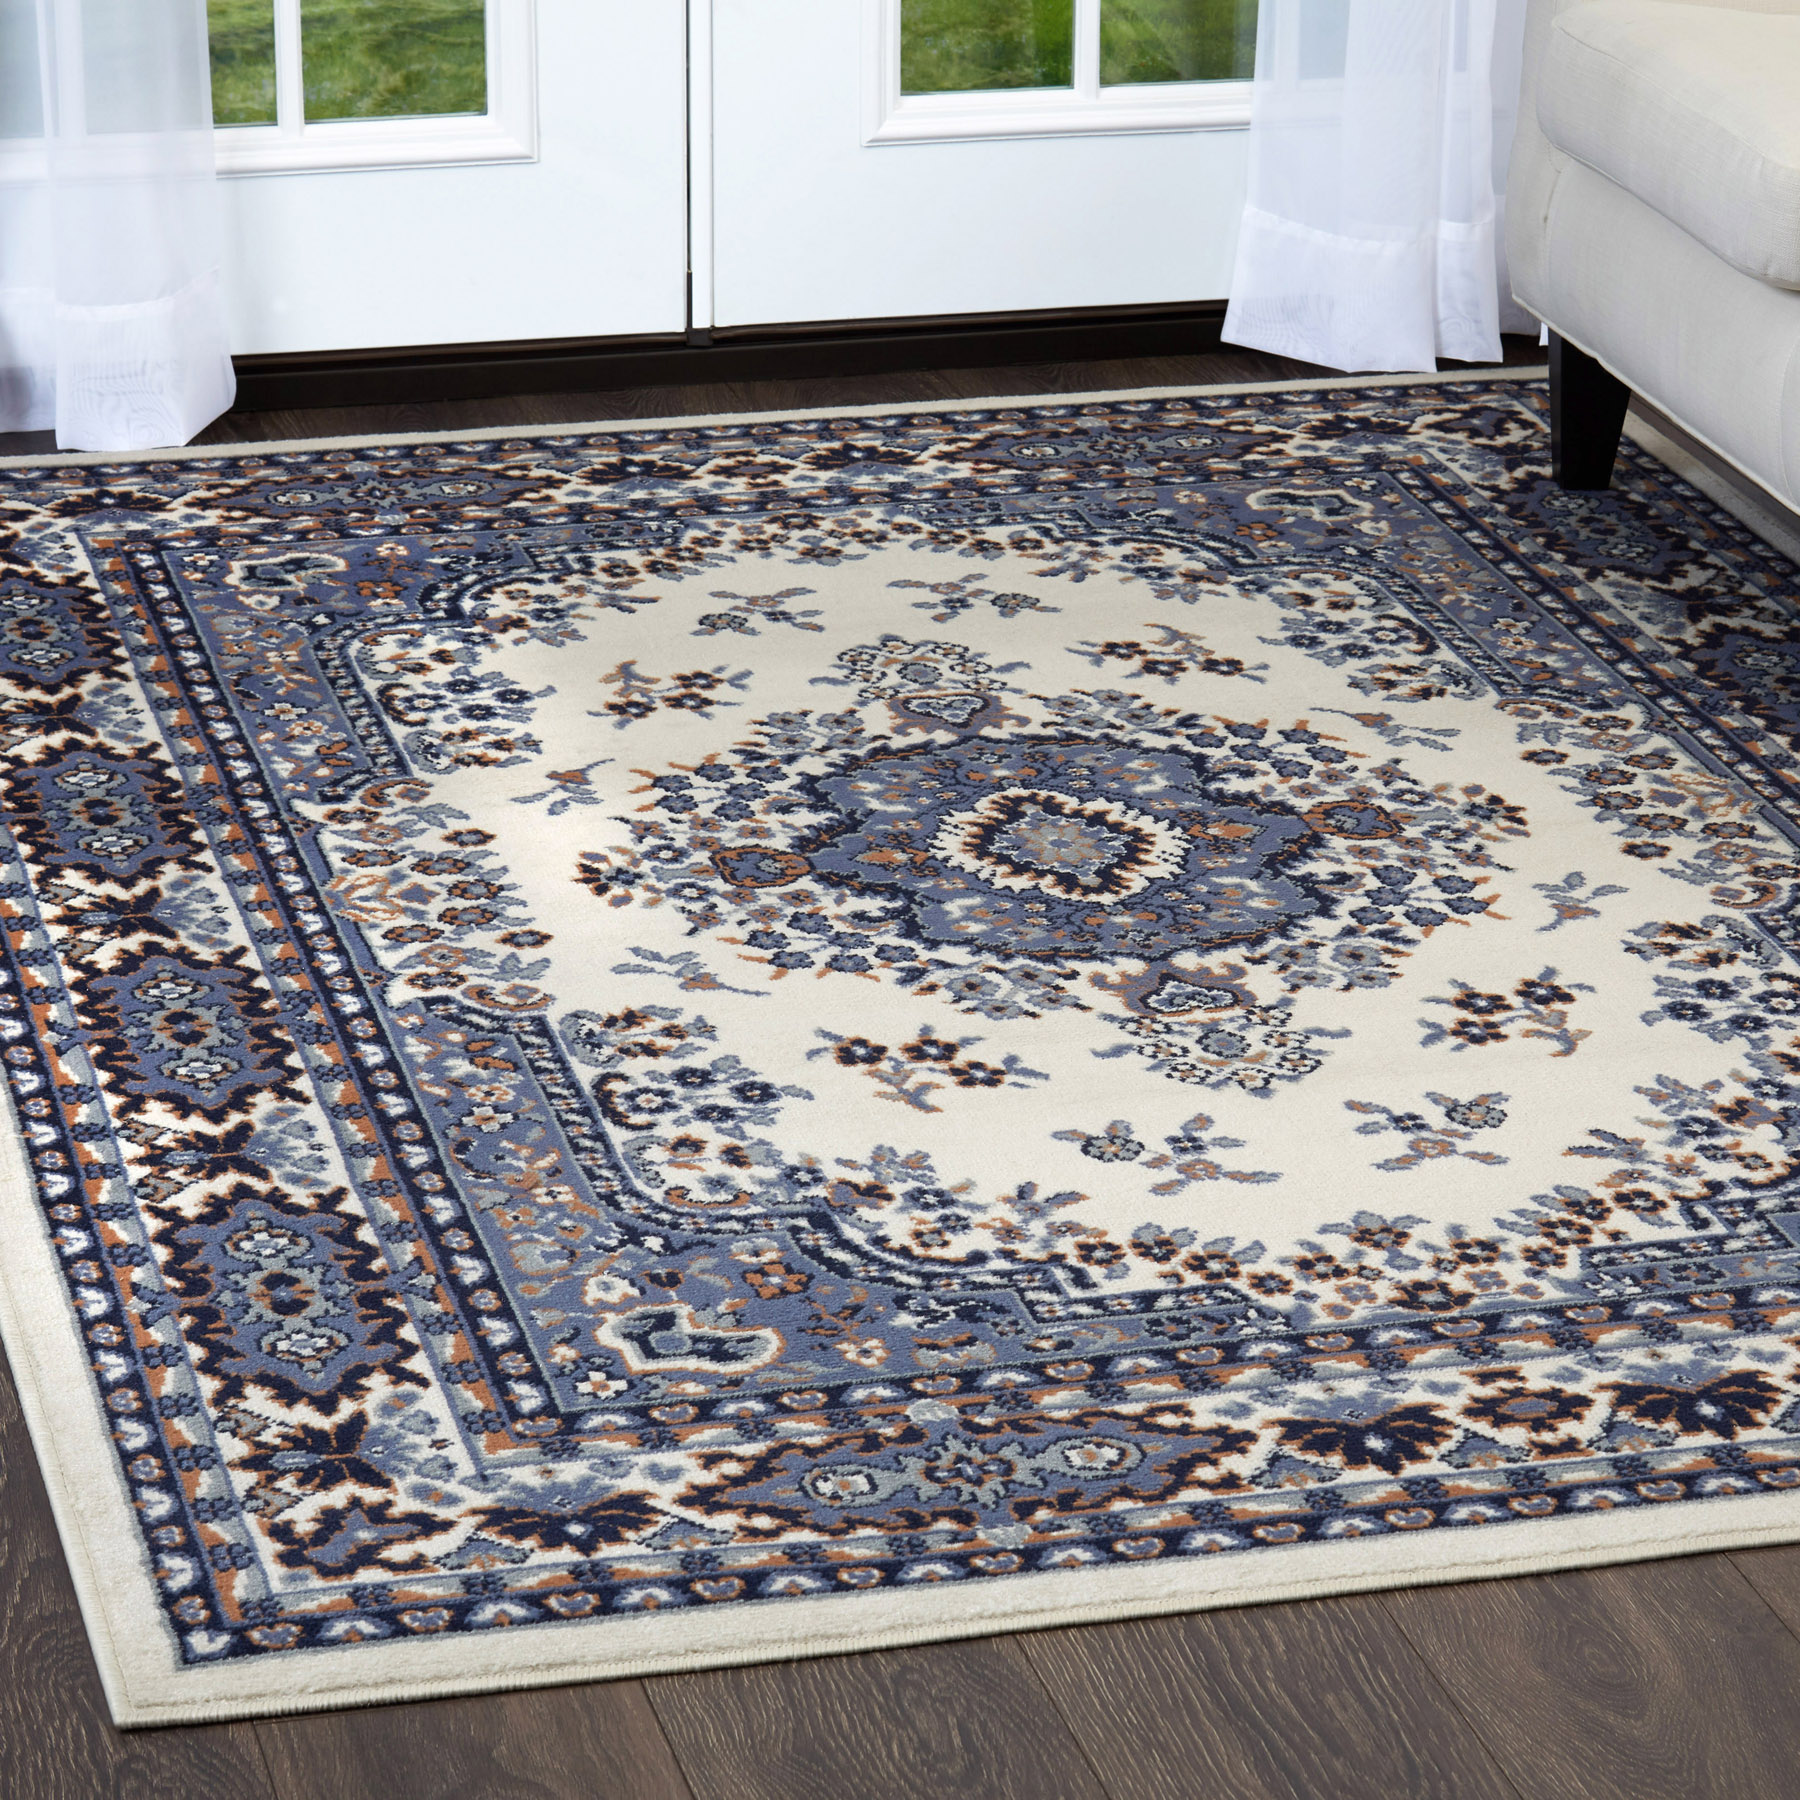 Rugs And Carpets Traditional Oriental Medallion Area Rug Persian Style